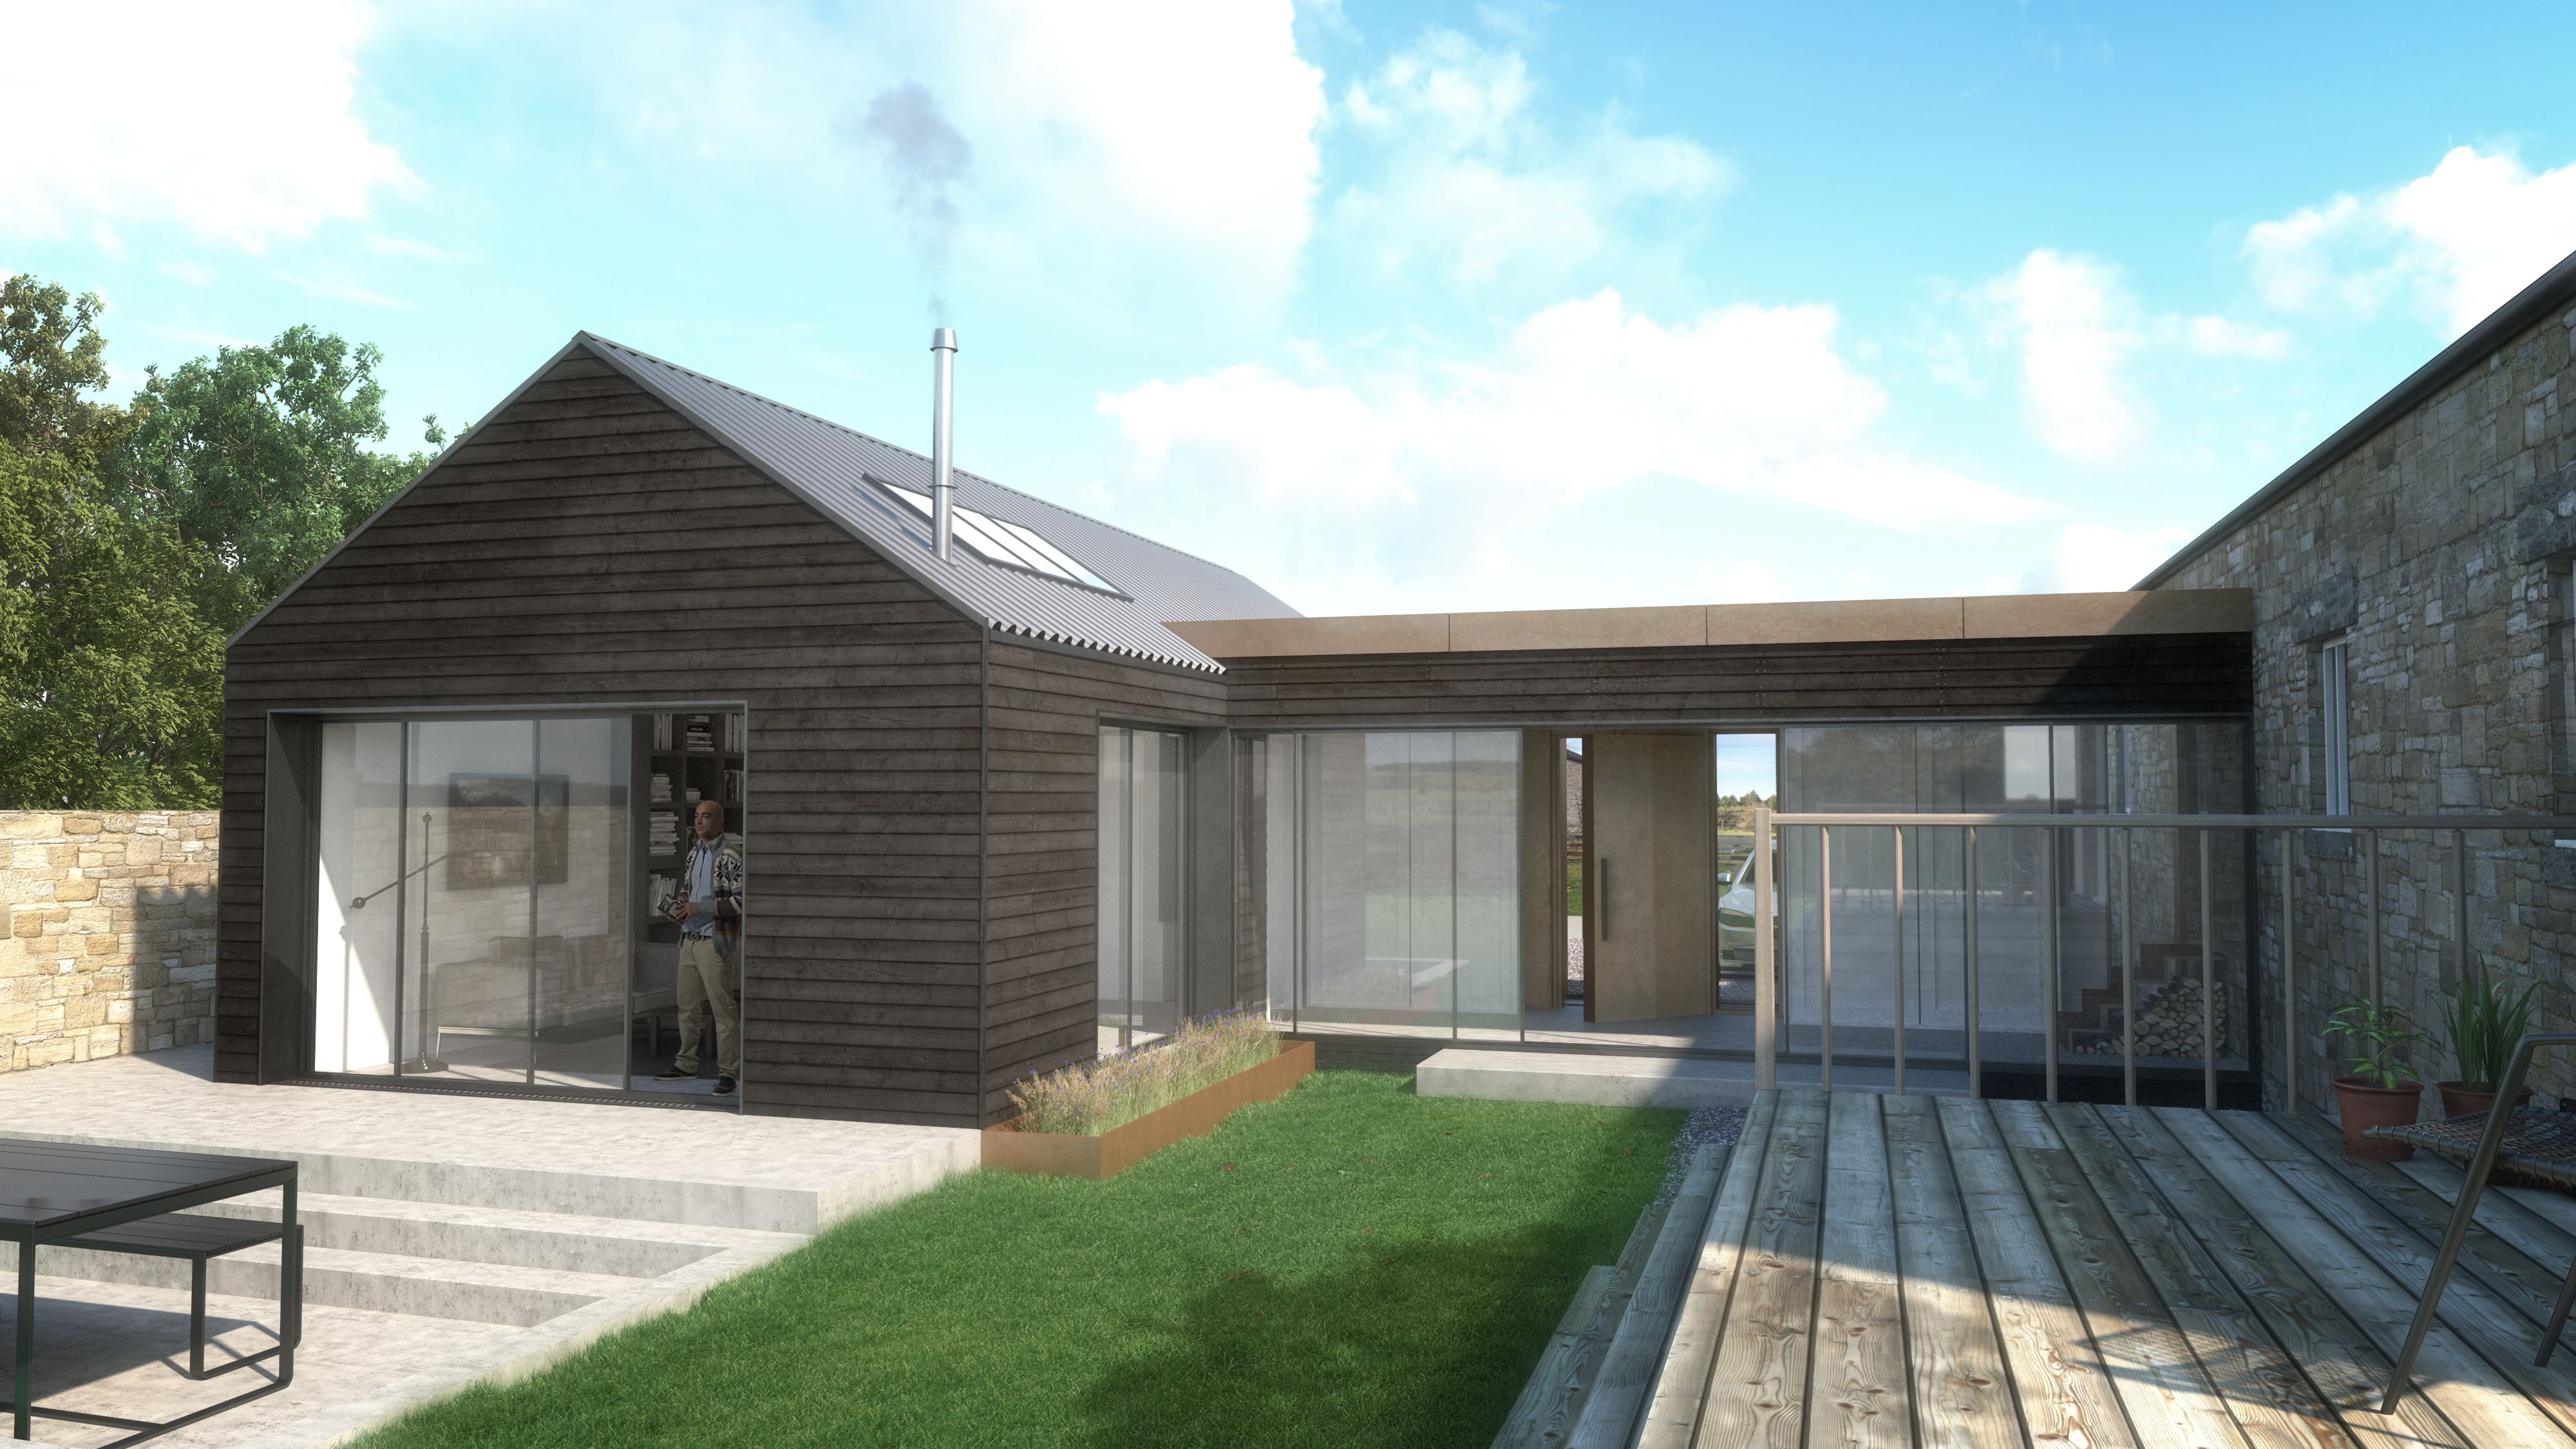 Marvelous Our Concept Is Complete For A Garage Conversion And Extension In Slayley,  Northumberland. We